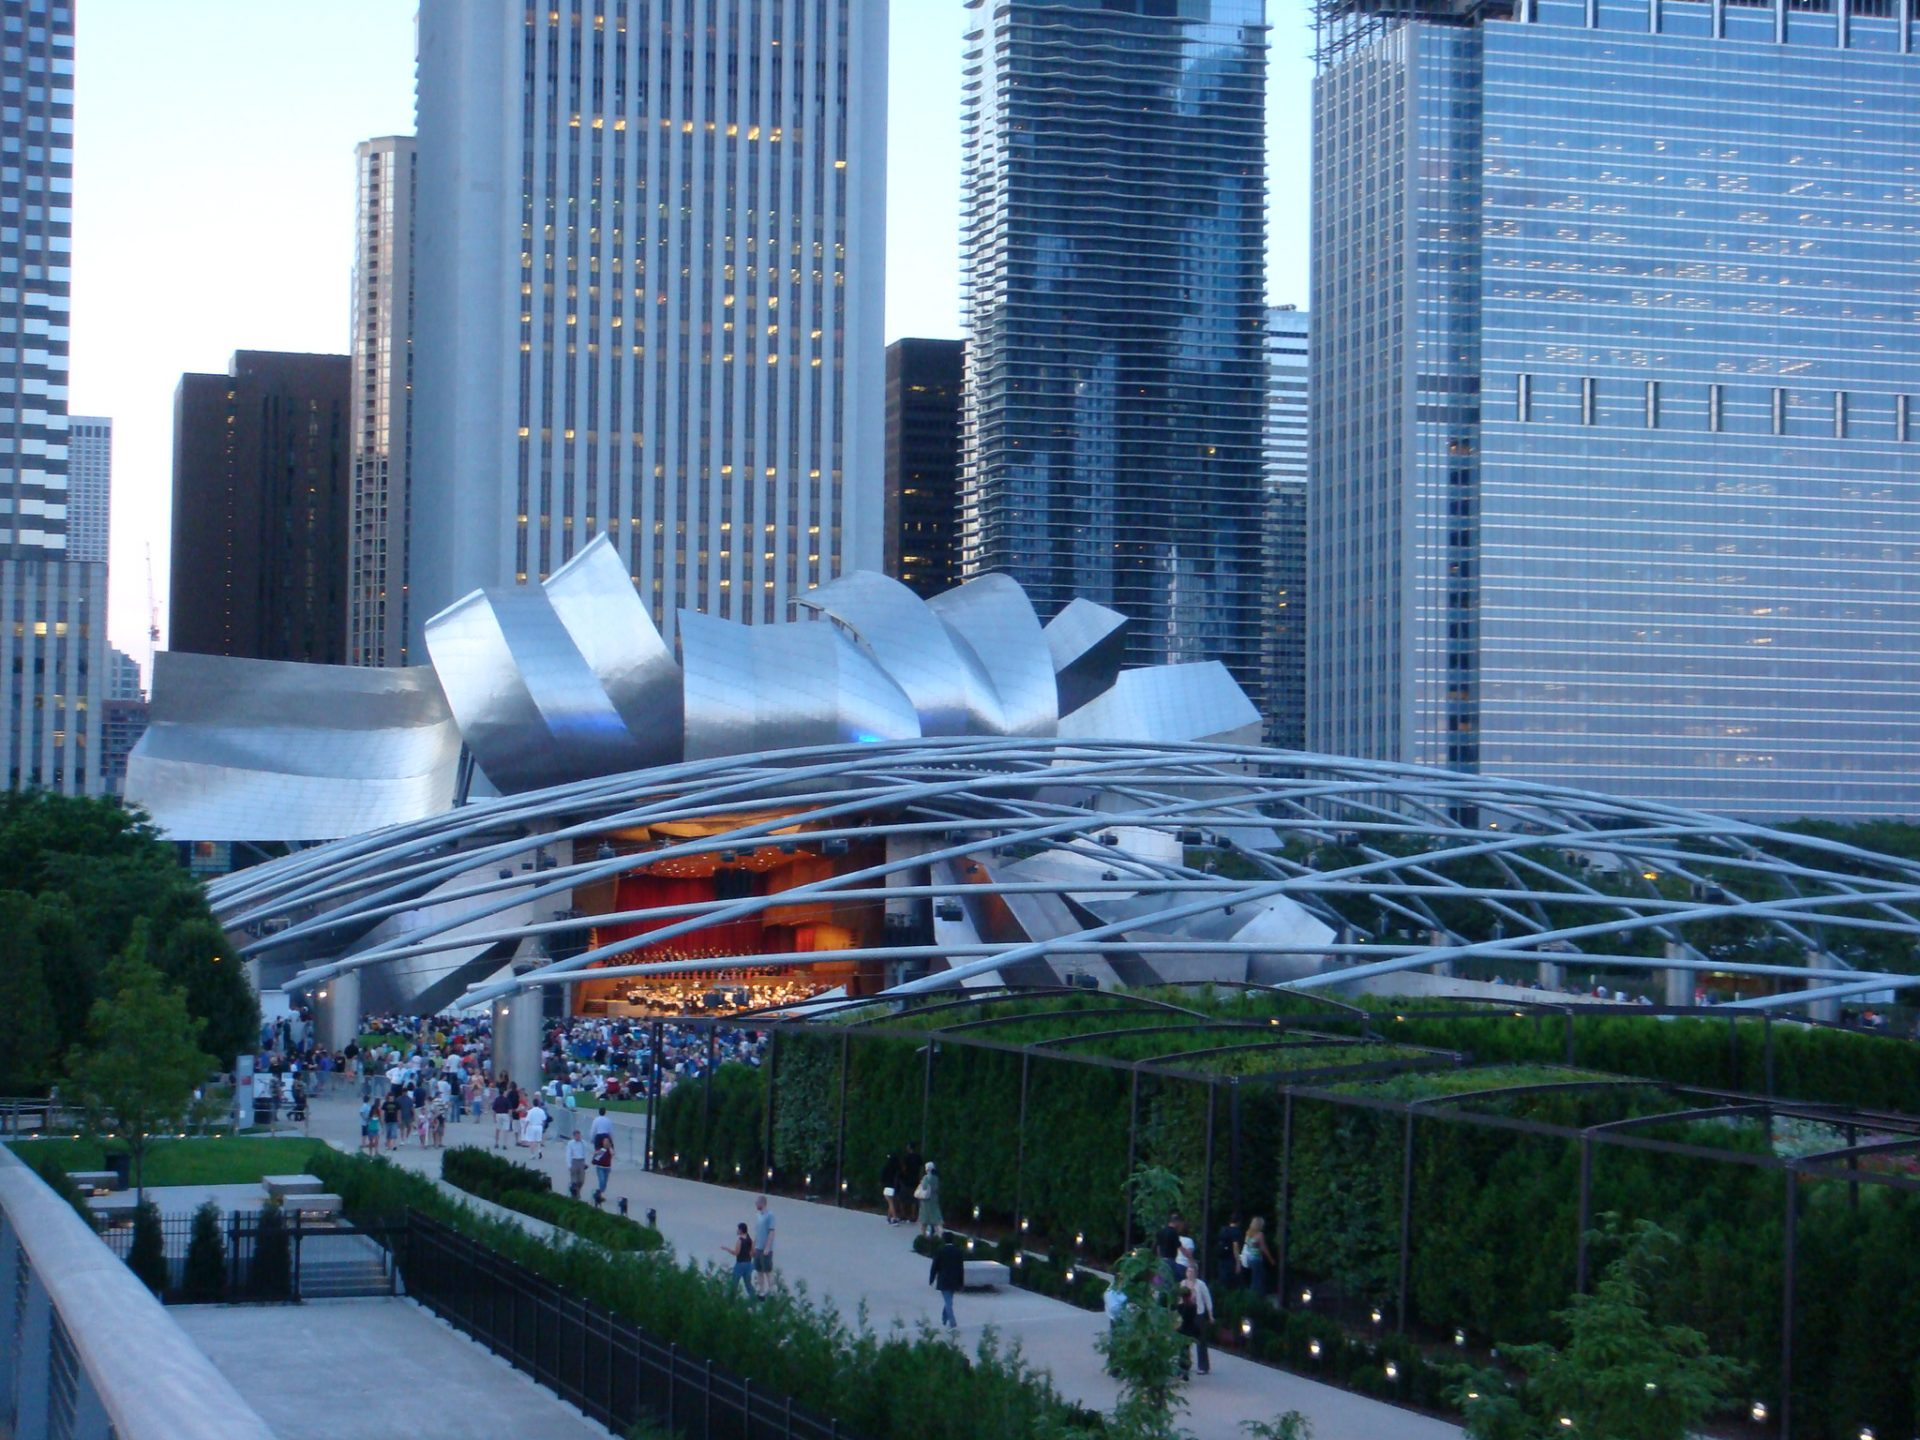 The Jay Pritzker Amphitheater; home to free outdoor cultural events all summer long